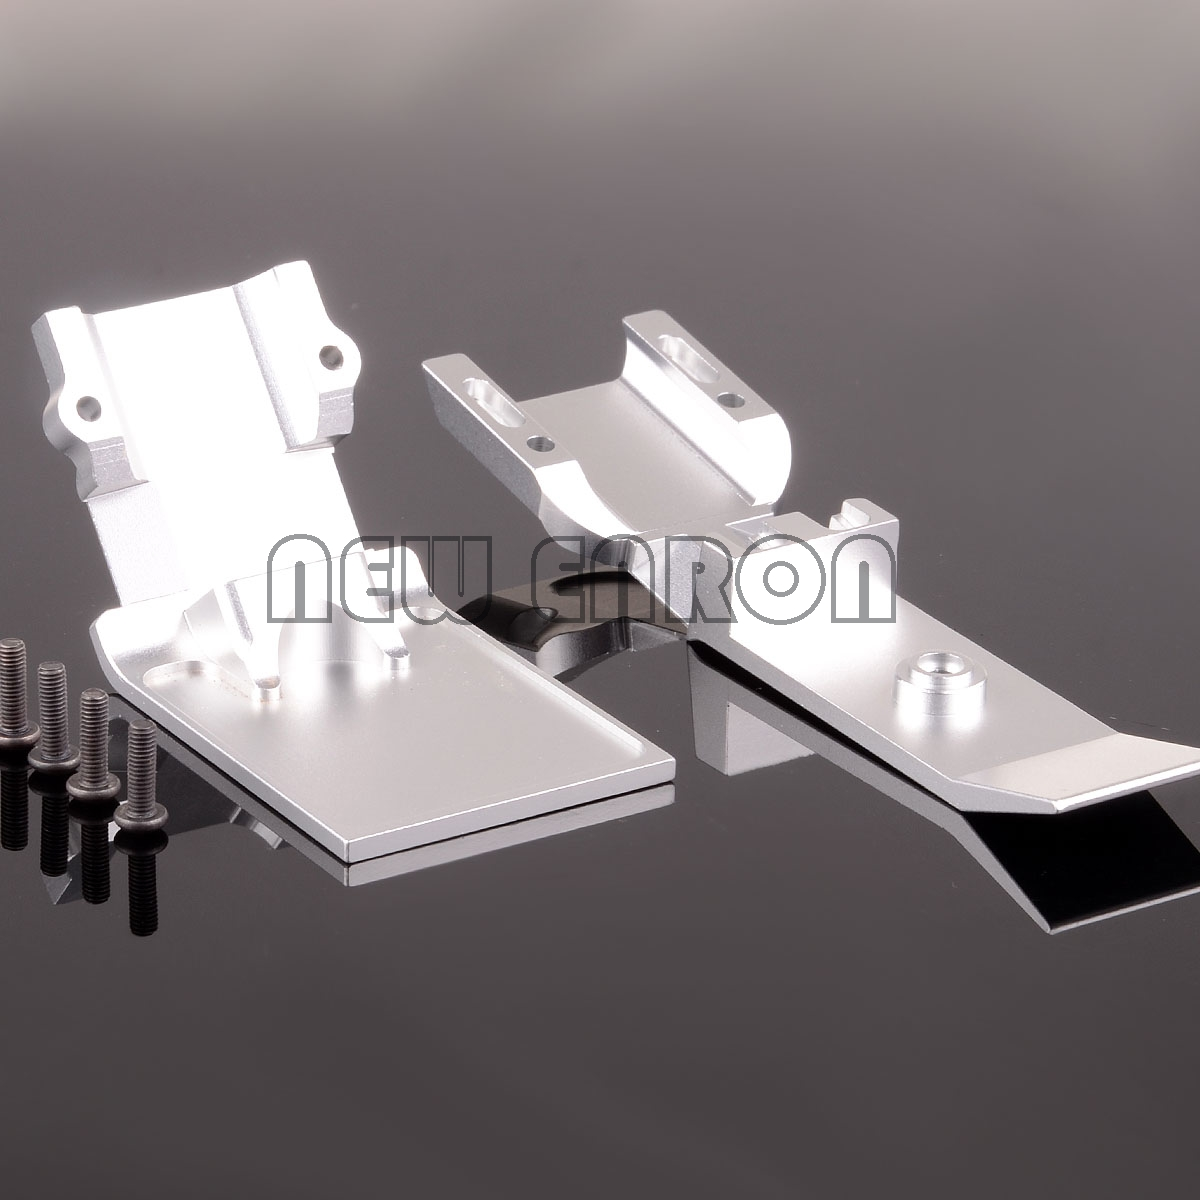 Aluminum Front Skid Plate For TRAXXAS RC Car 1//10 SUMMIT SLAYER PRO 4X4